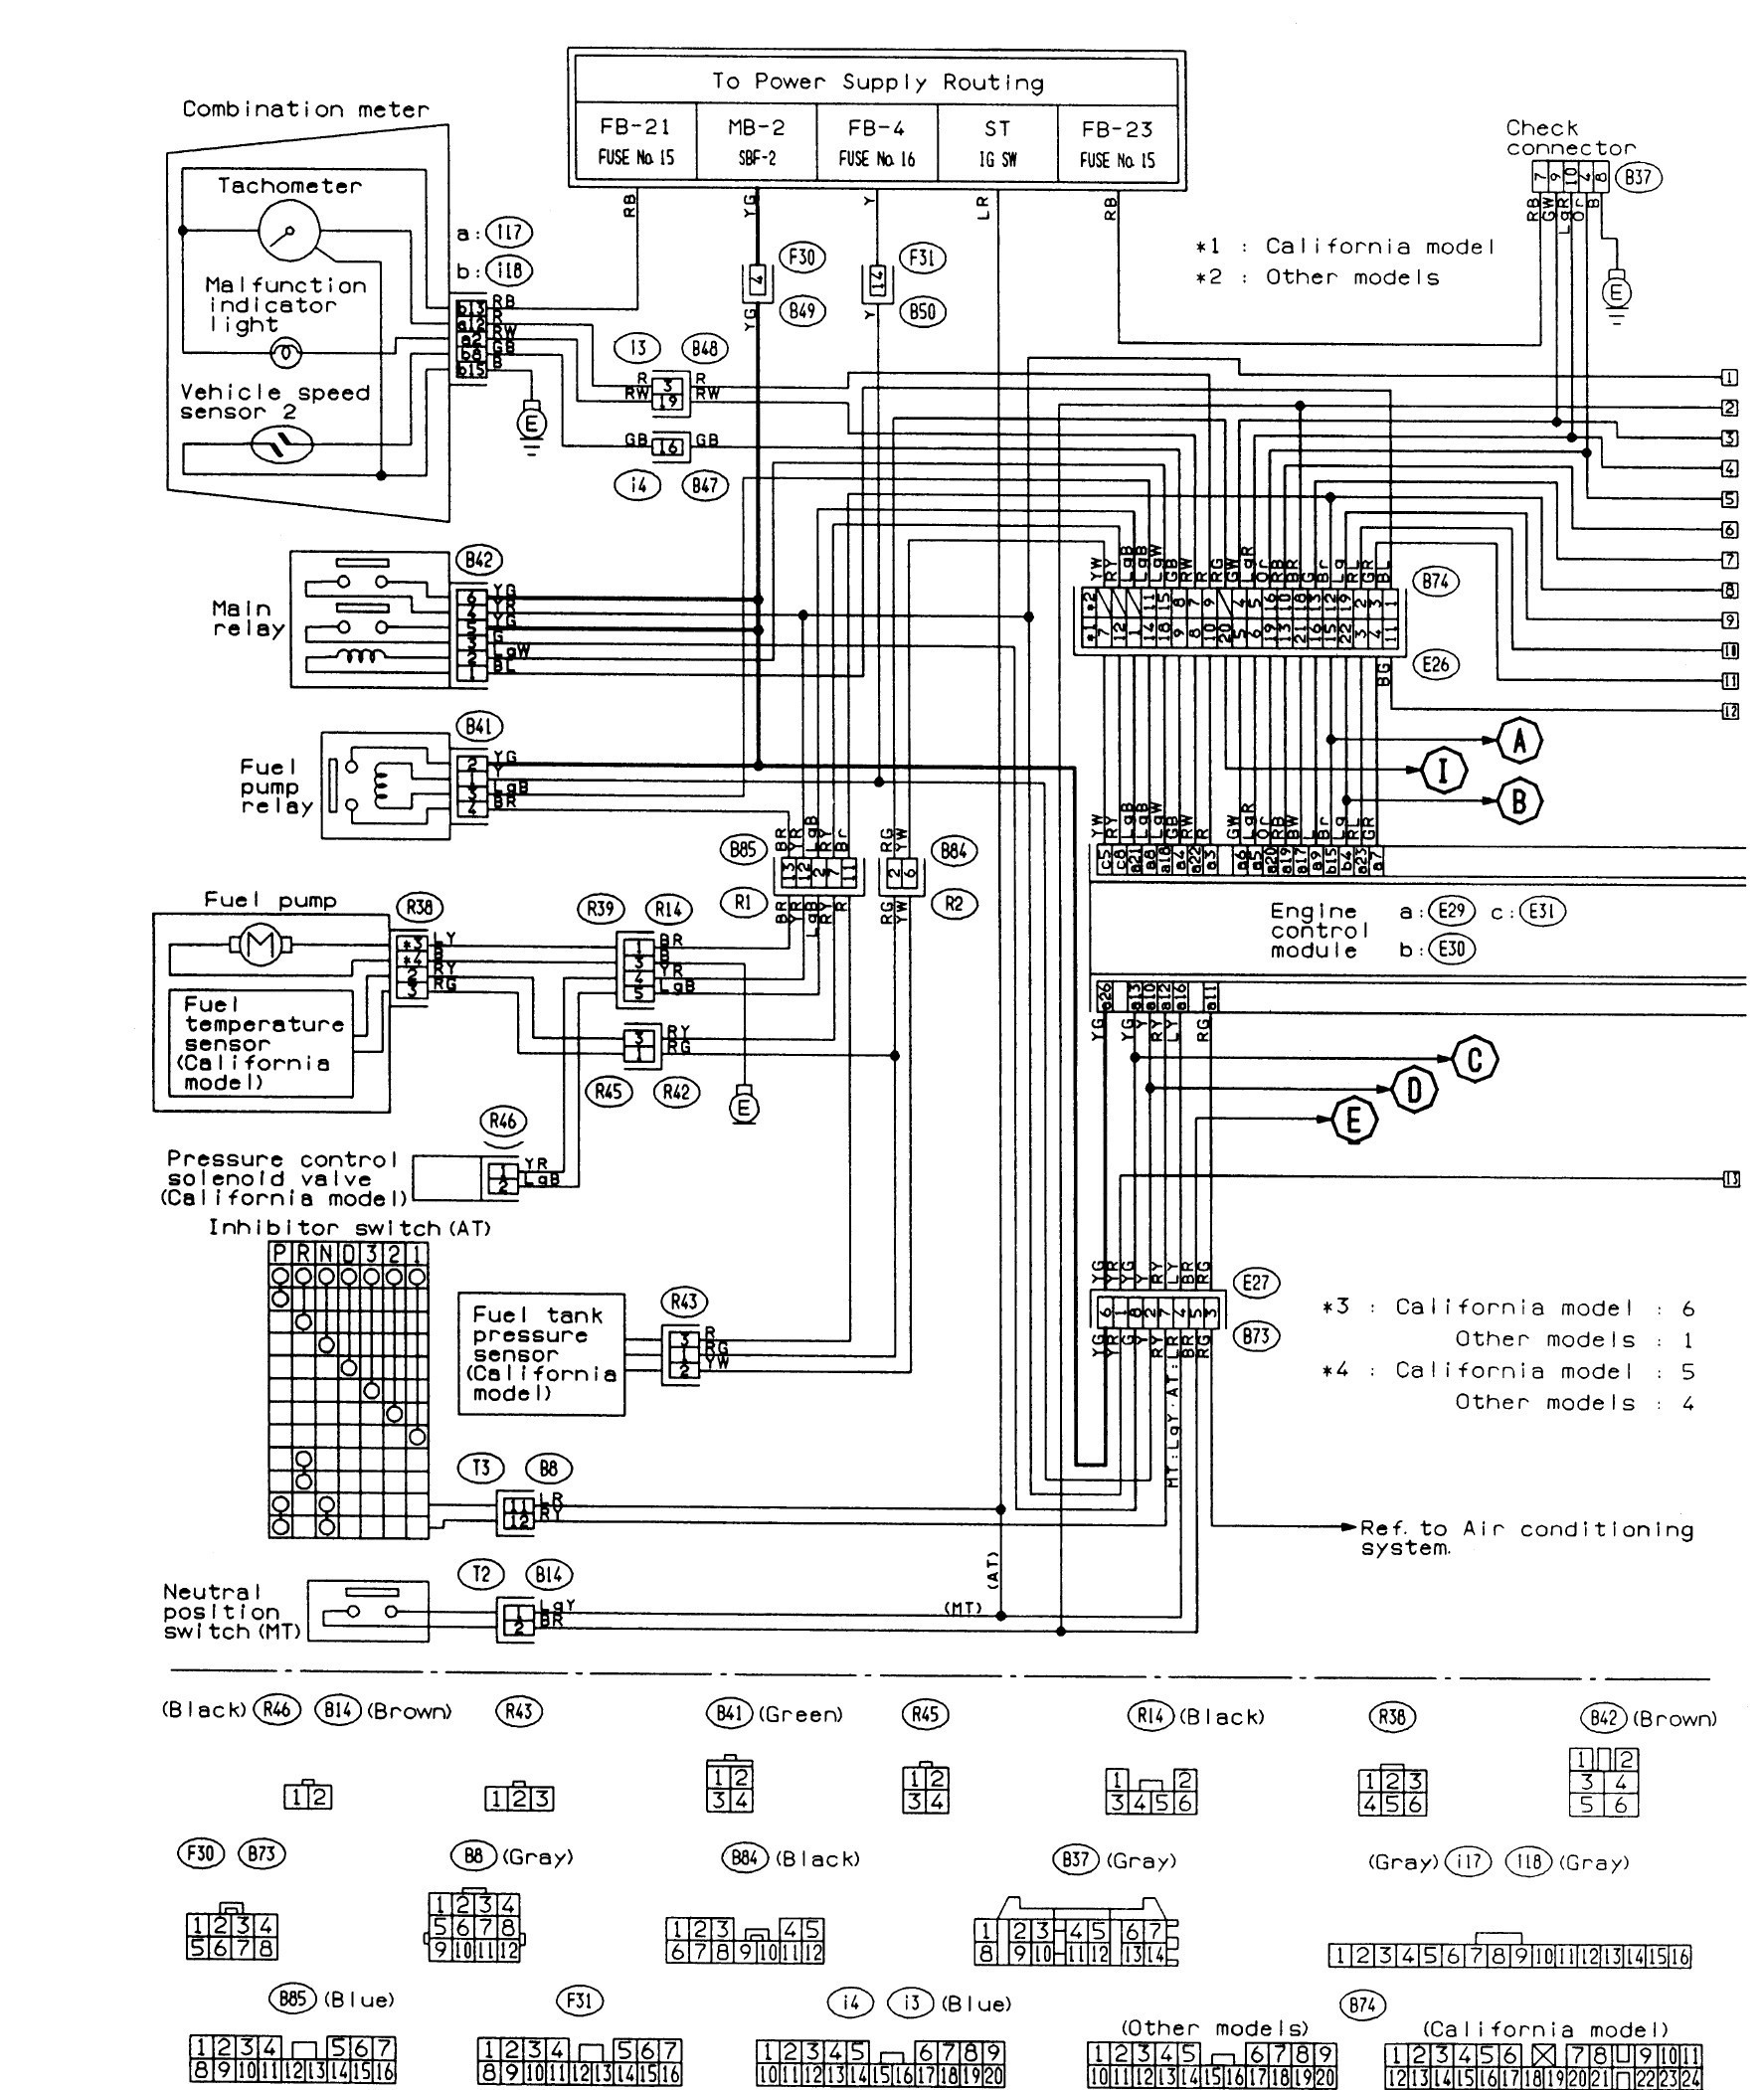 brz fujitsu wiring diagram fujitsu ten limited wiring diagram awesome | wiring ...